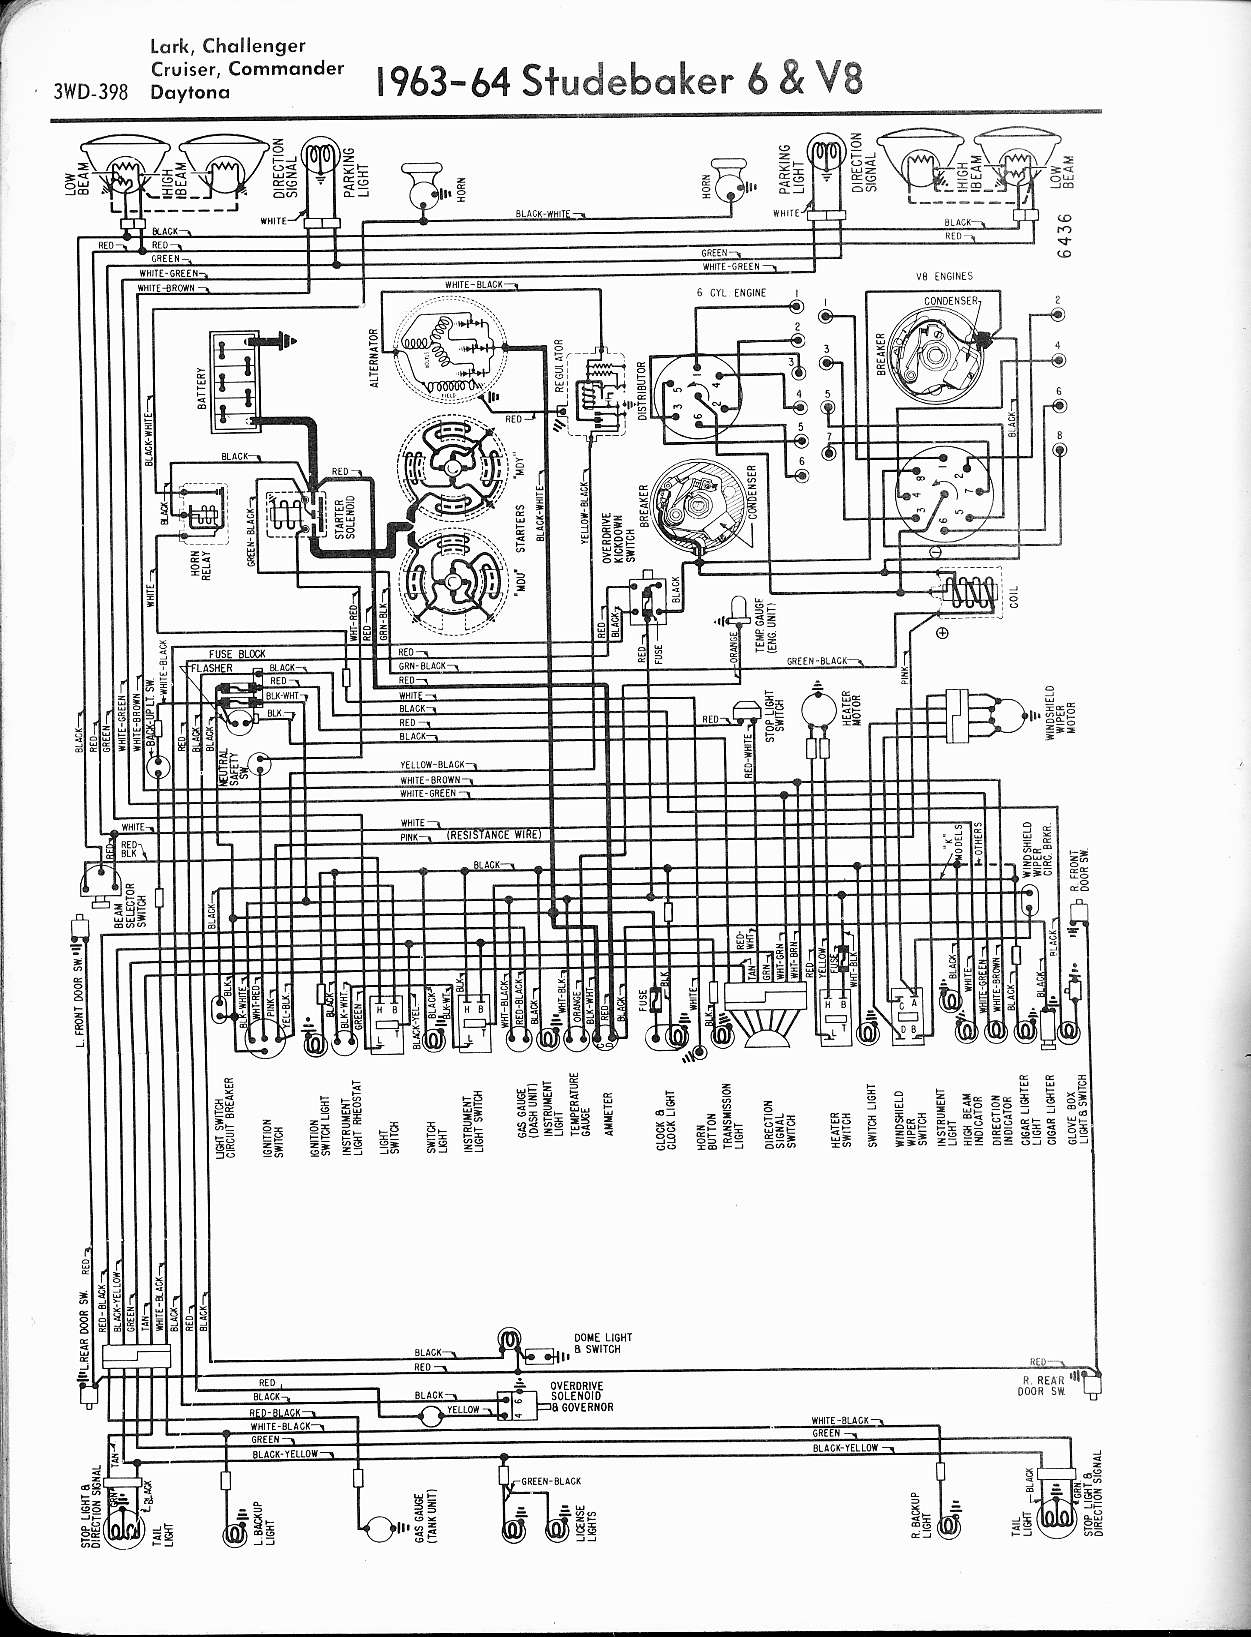 DIAGRAM] M29 Weasel Wire Diagrams FULL Version HD Quality Wire Diagrams -  PIC16F616SCHEMATIC437.ARBREDESVOIX.FRarbredesvoix.fr